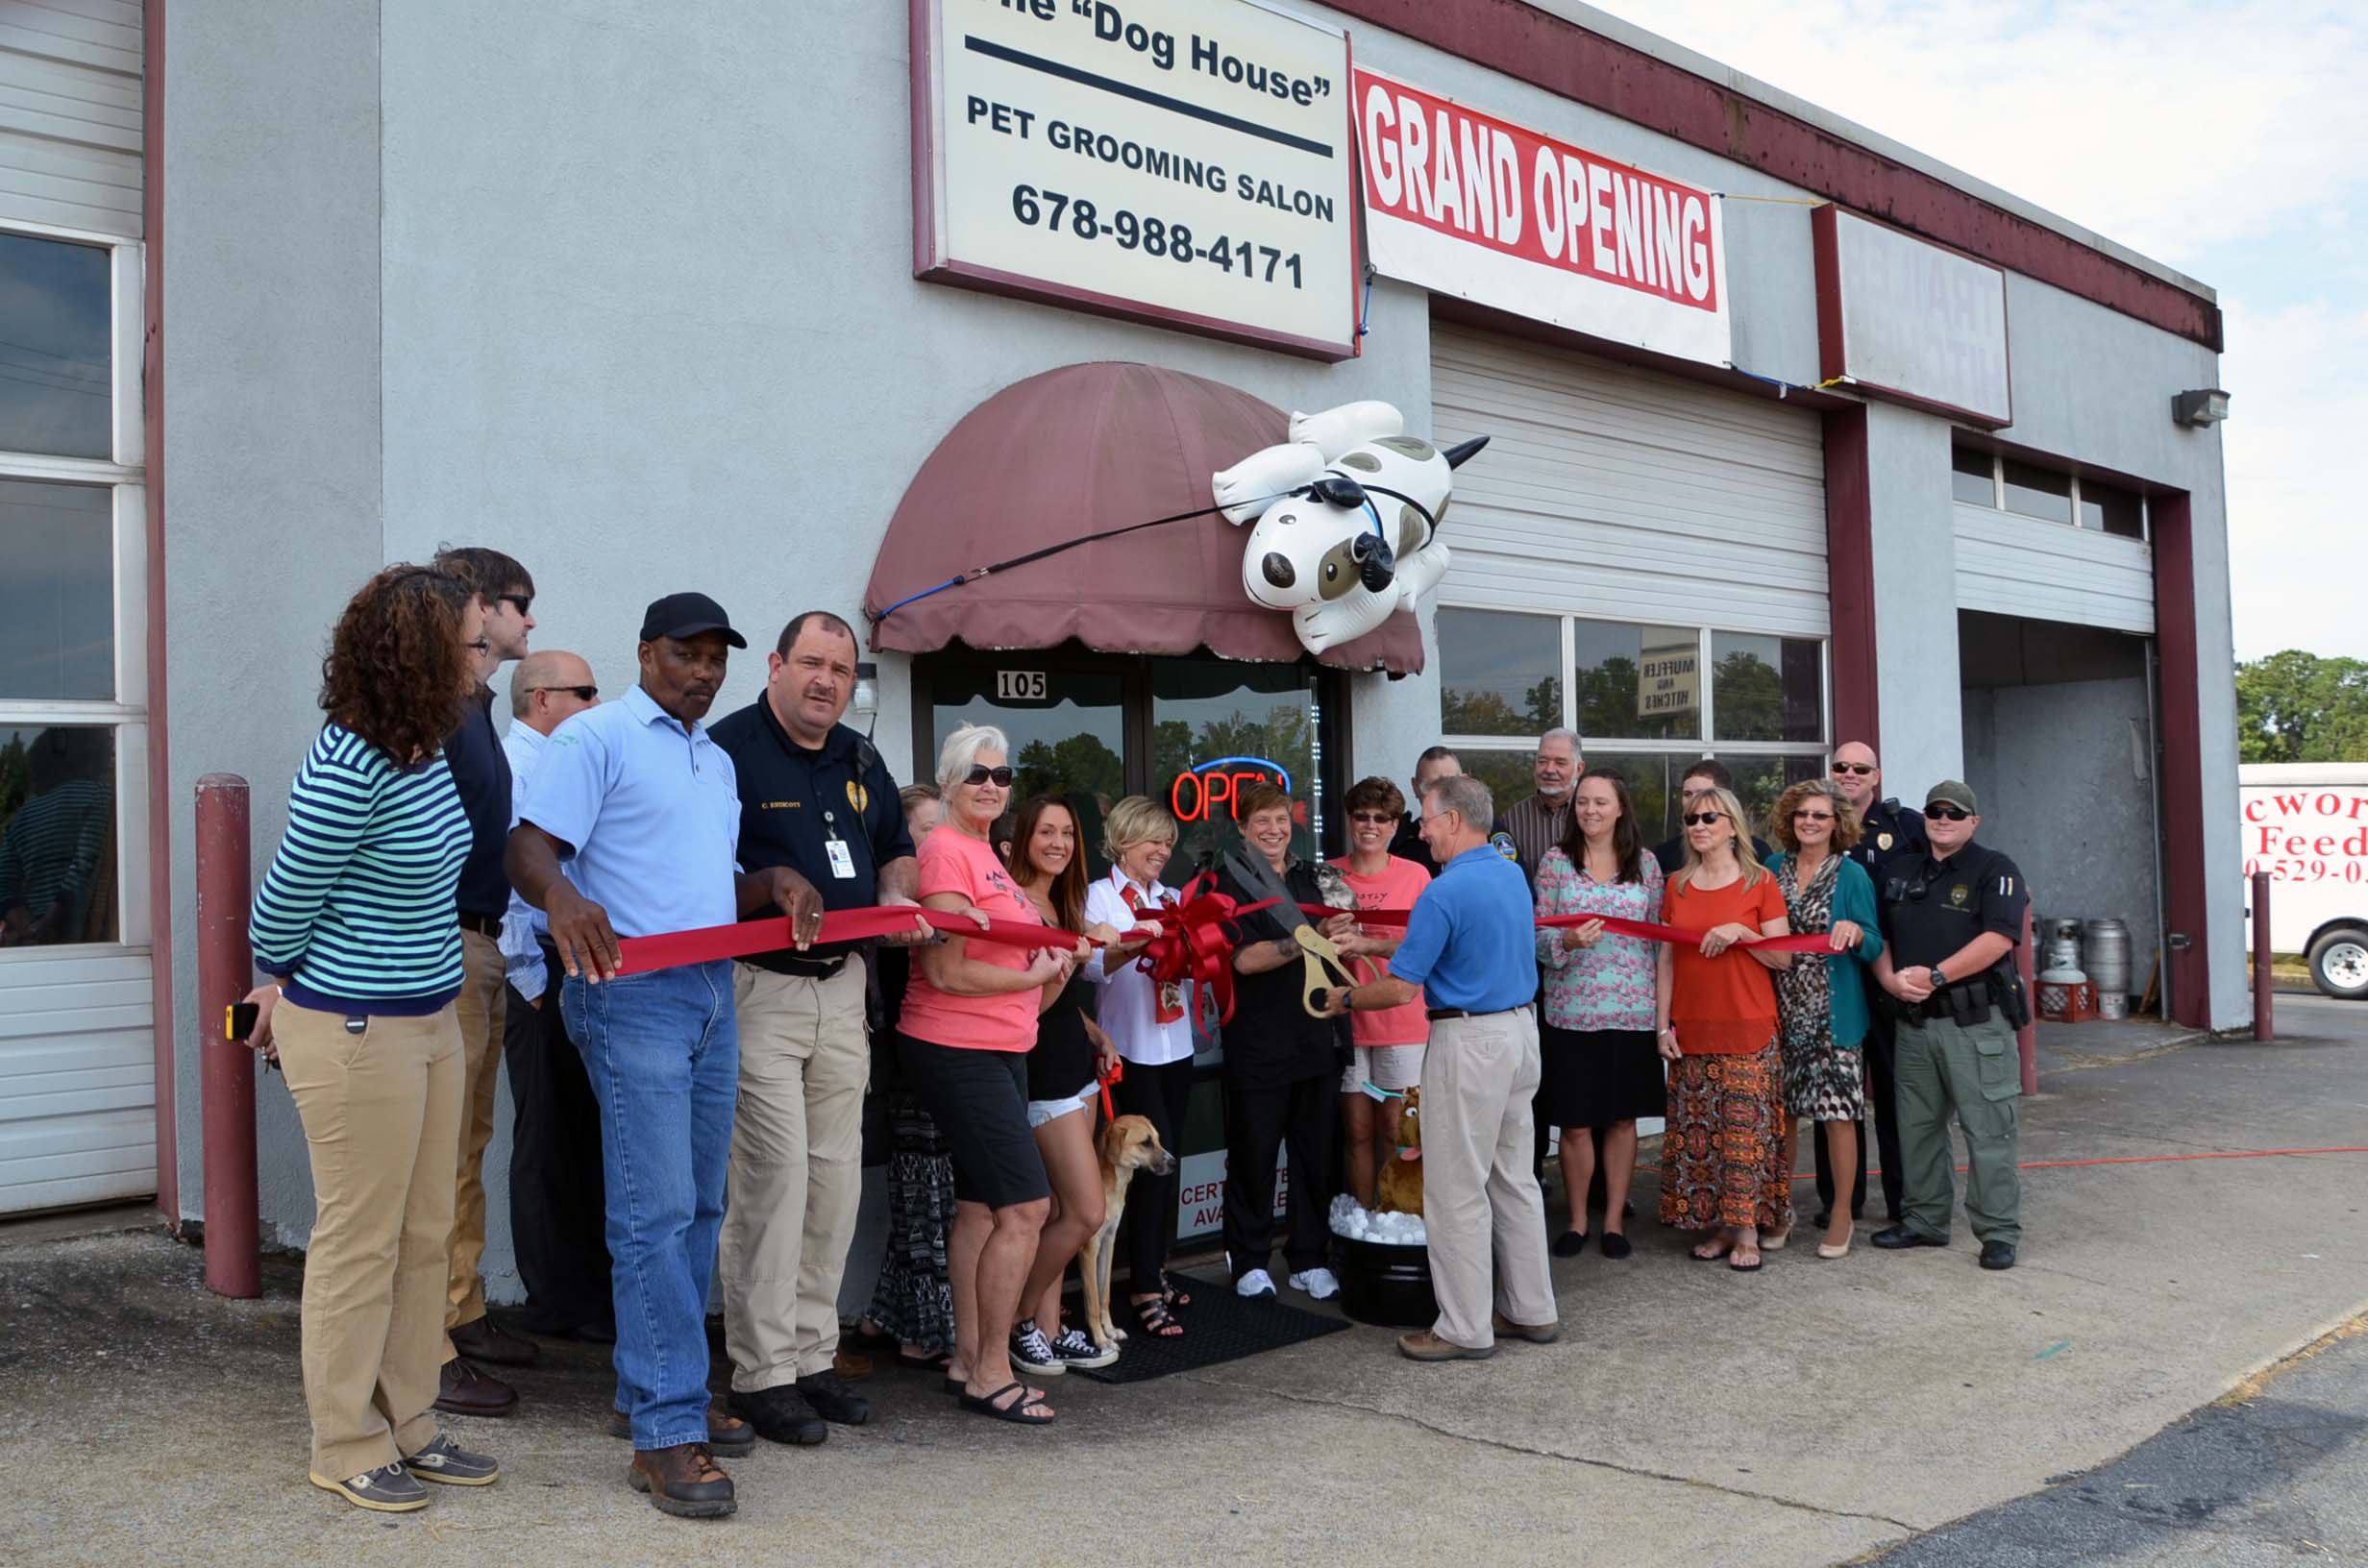 Ribbon Cutting for Dog House1